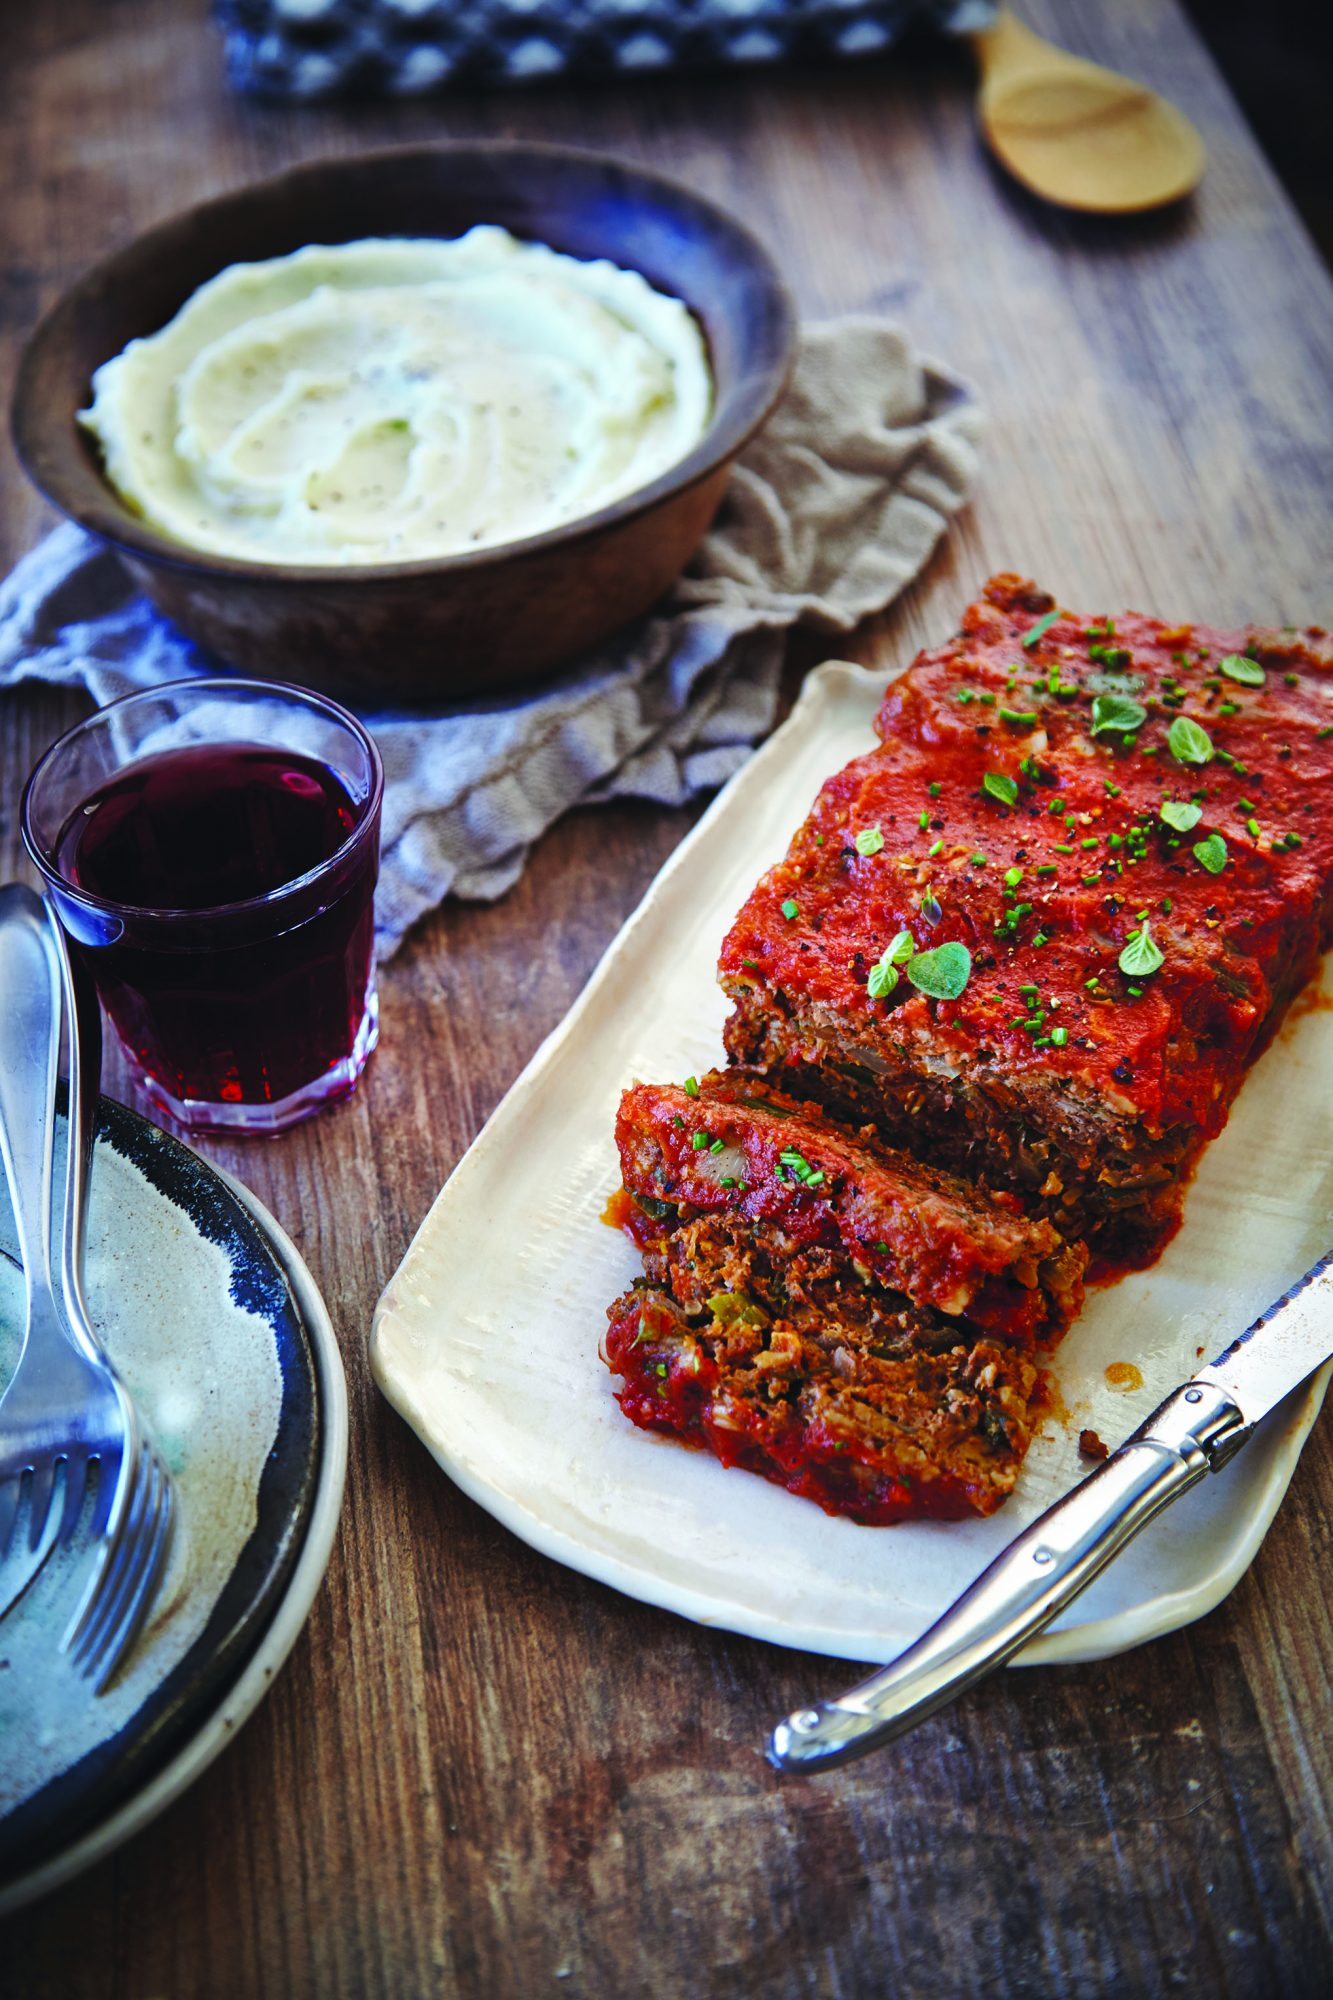 Chili Pepper-Spiked Meat Loaf